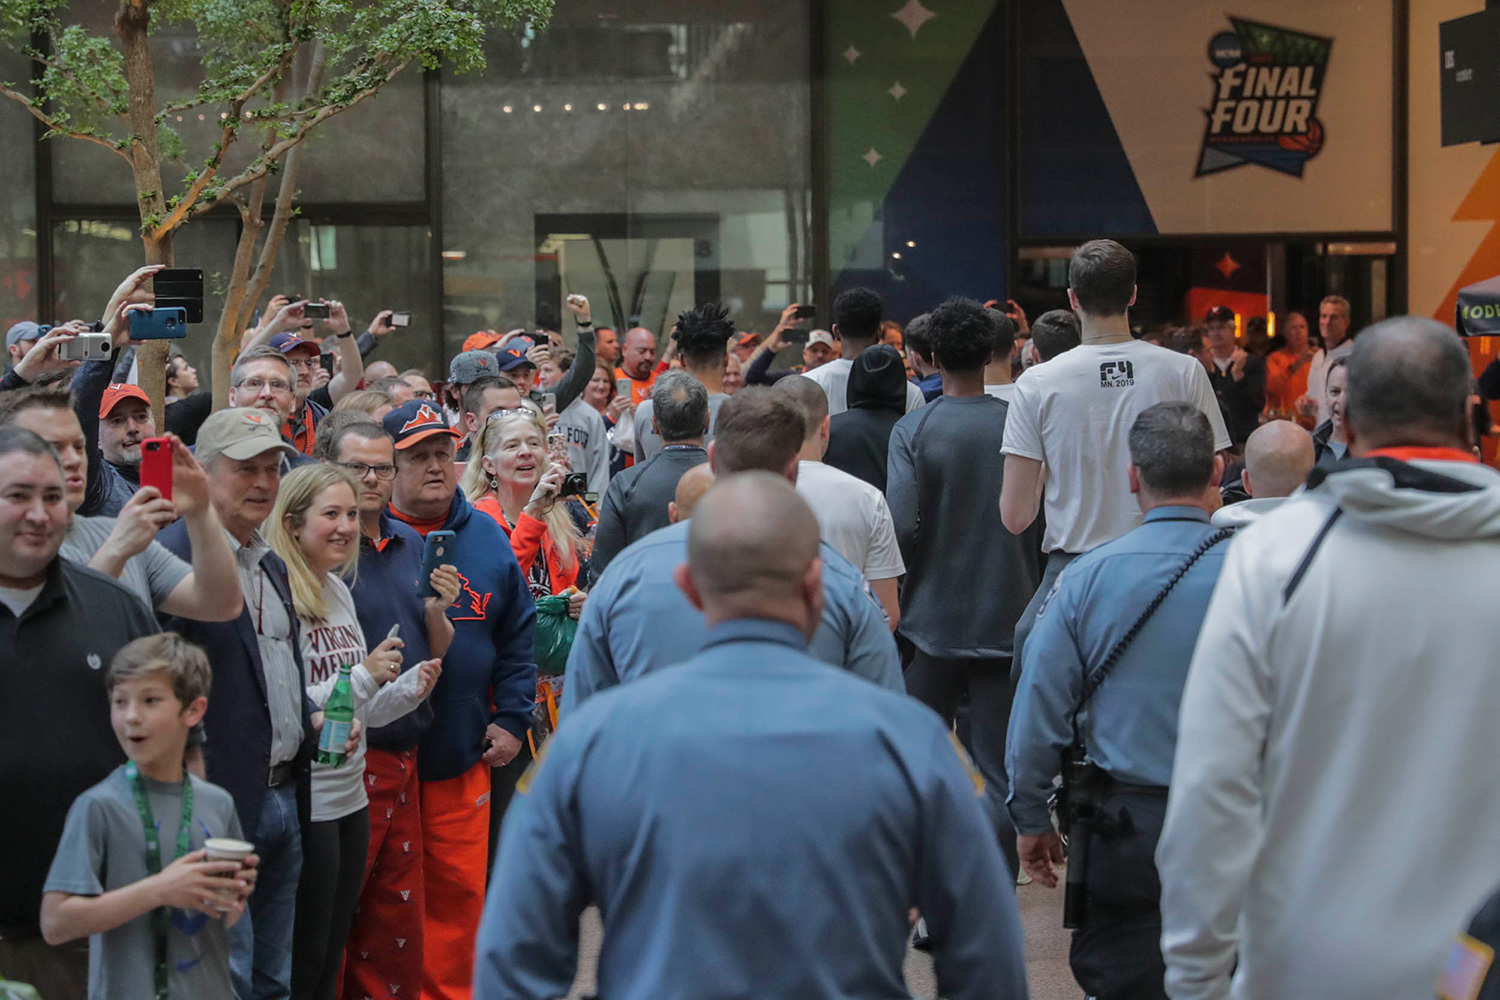 The Cavalier basketball team makes their way through the hotel atrium Monday afternoon, to the delight of hundreds of fans.